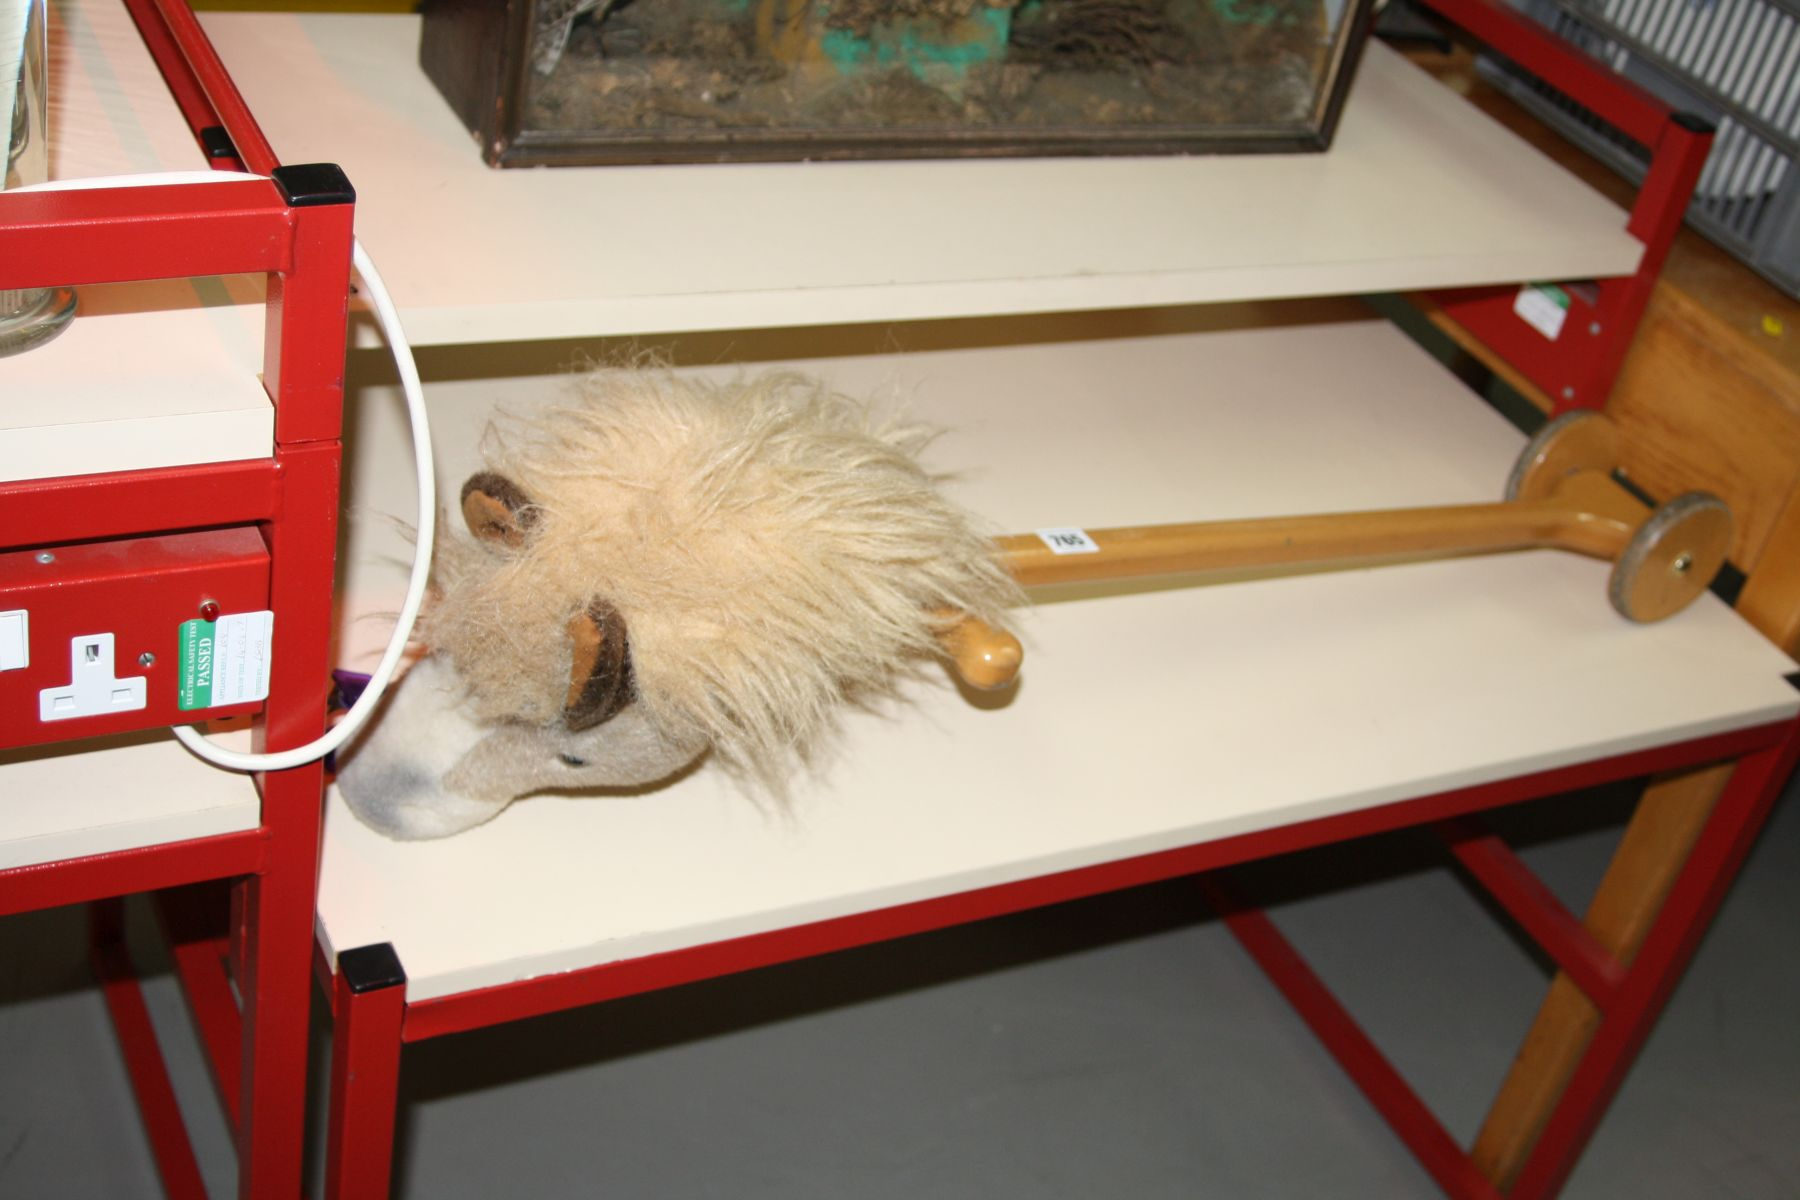 Lot 765 - A MODERN MERRYTHOUGHT WOODEN AND PLUSH HOBBY HORSE